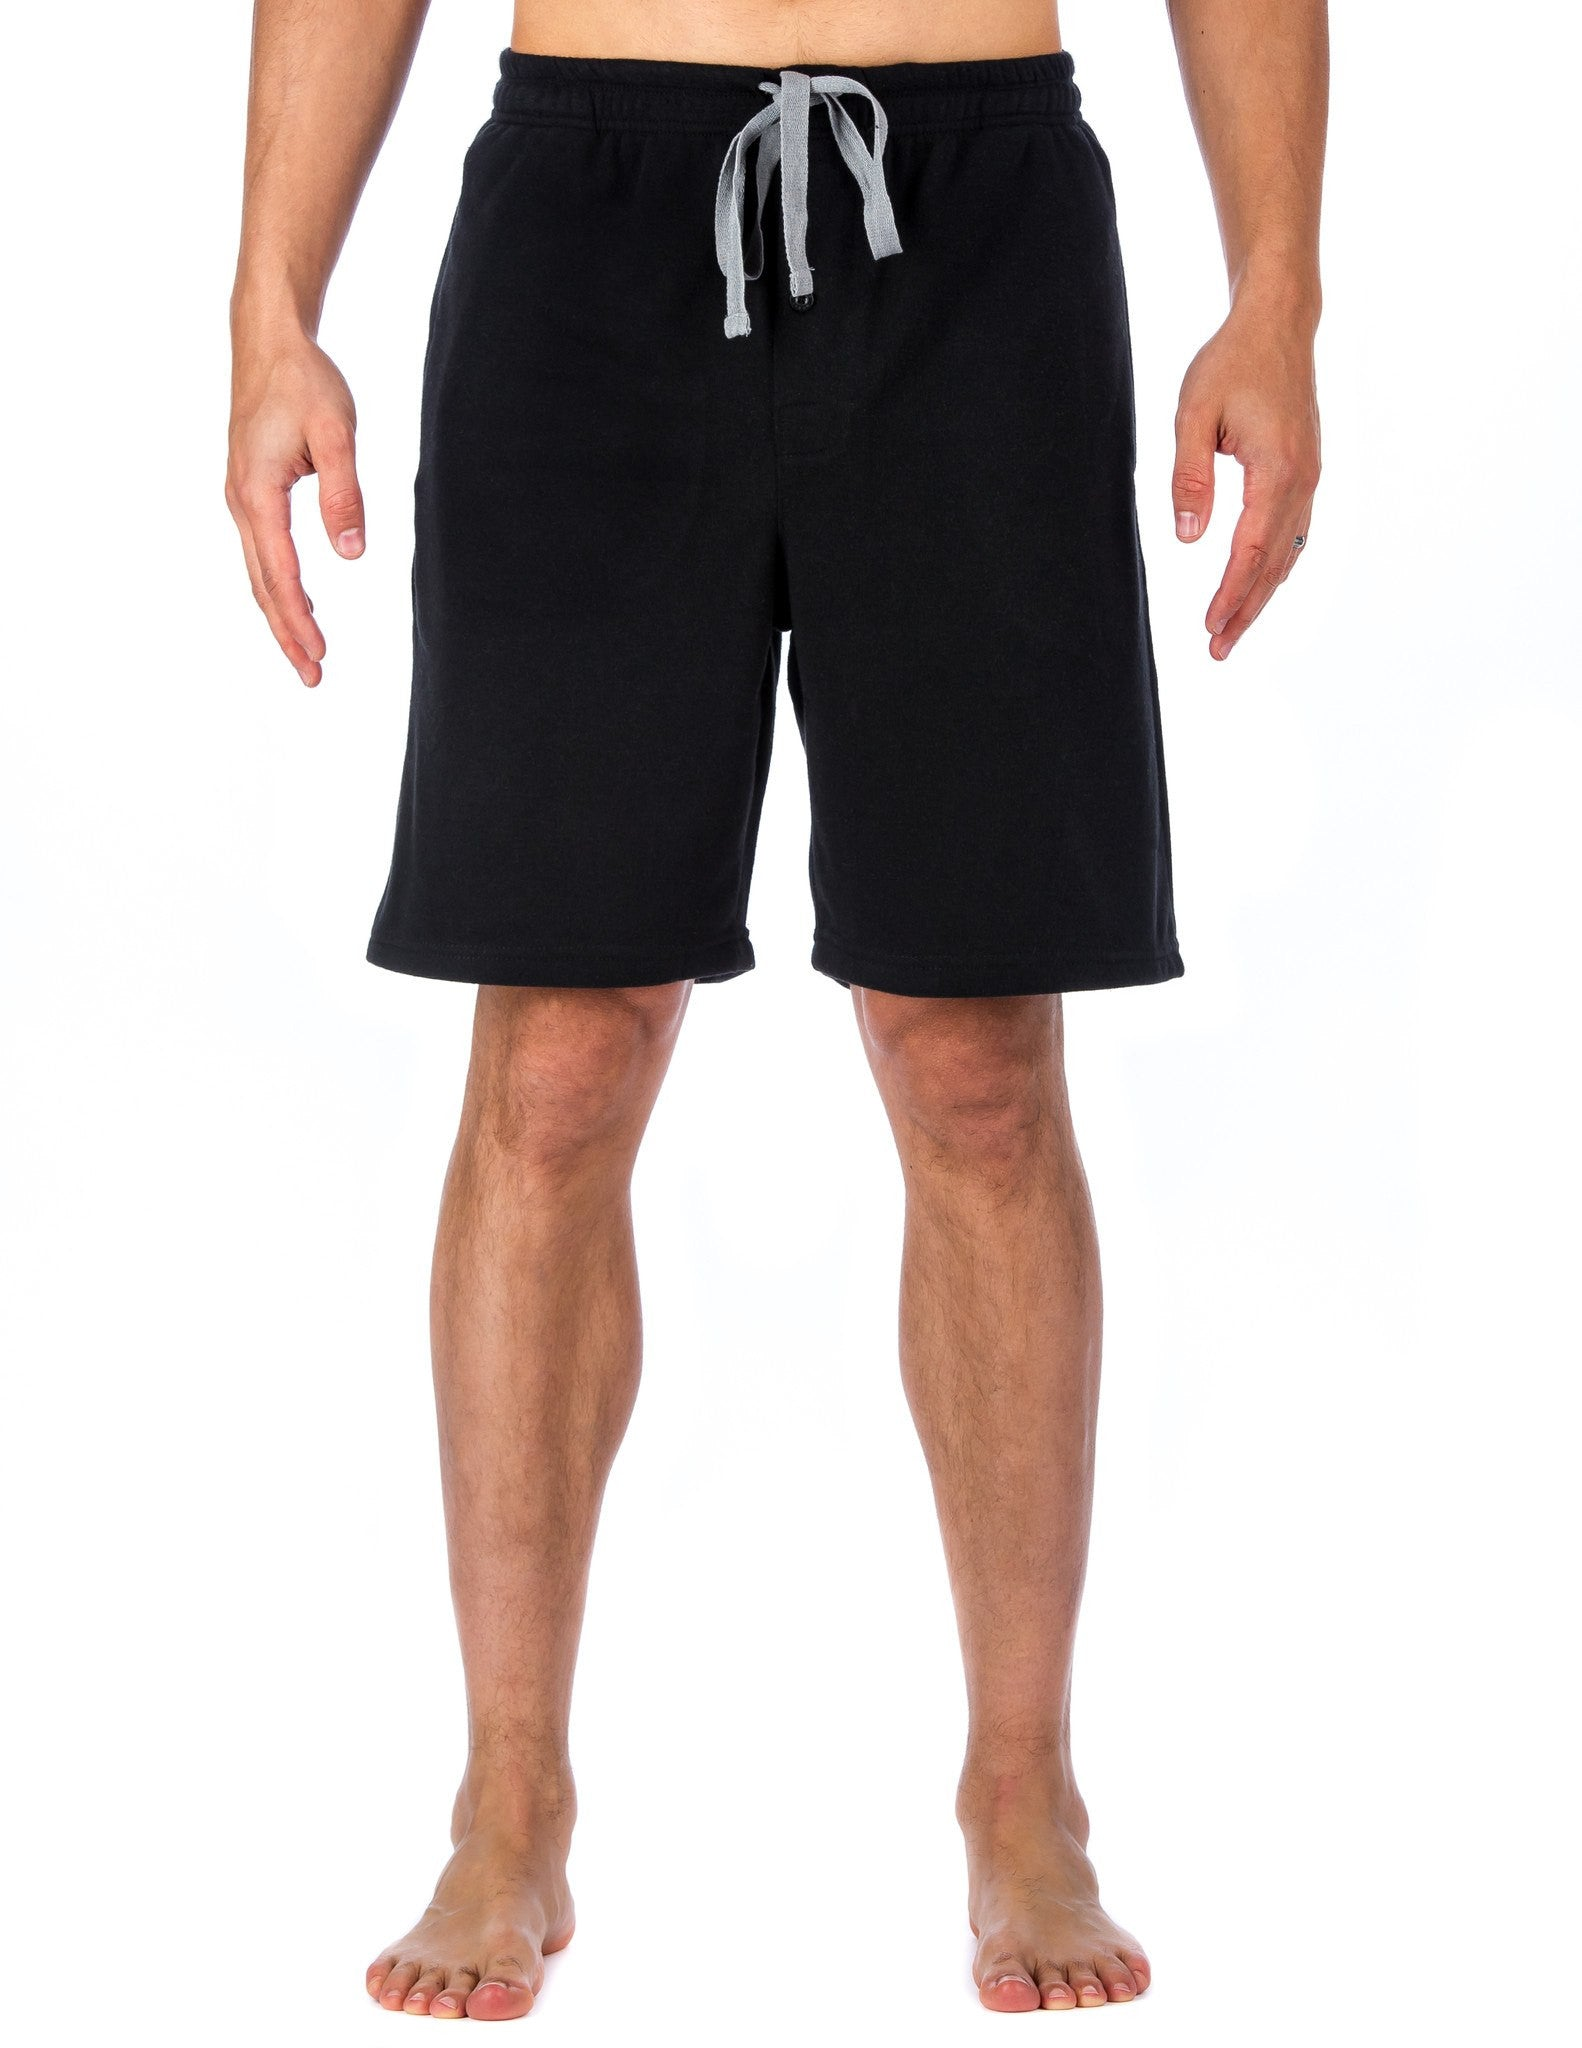 Men's Fleece Lined Lounge/Sleep Shorts